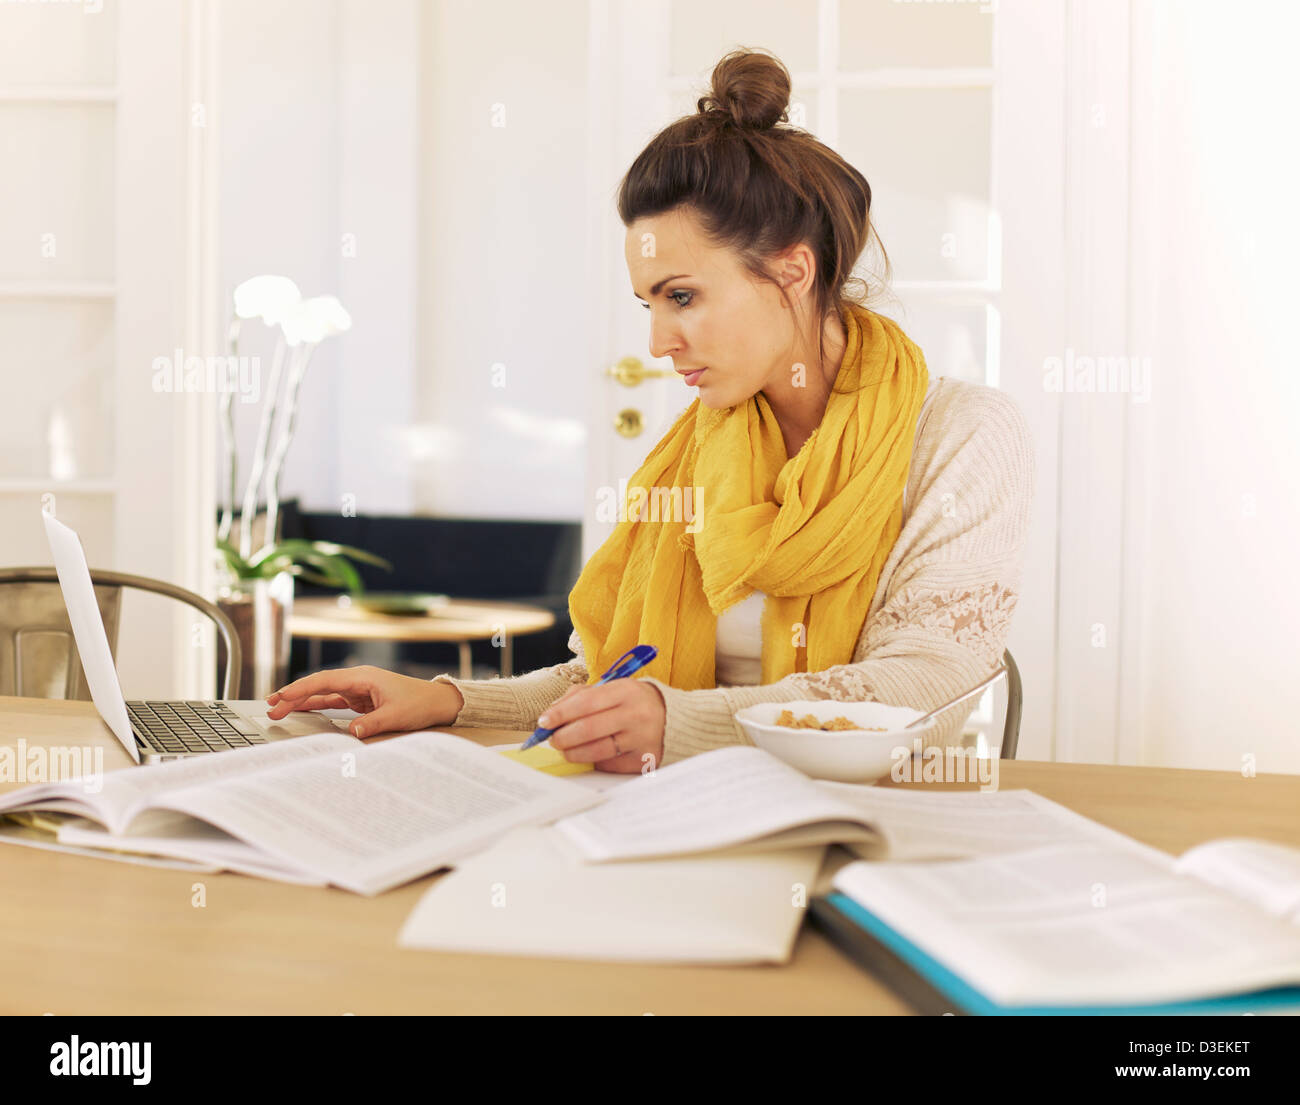 Young university student using laptop and books in studying at home - Stock Image